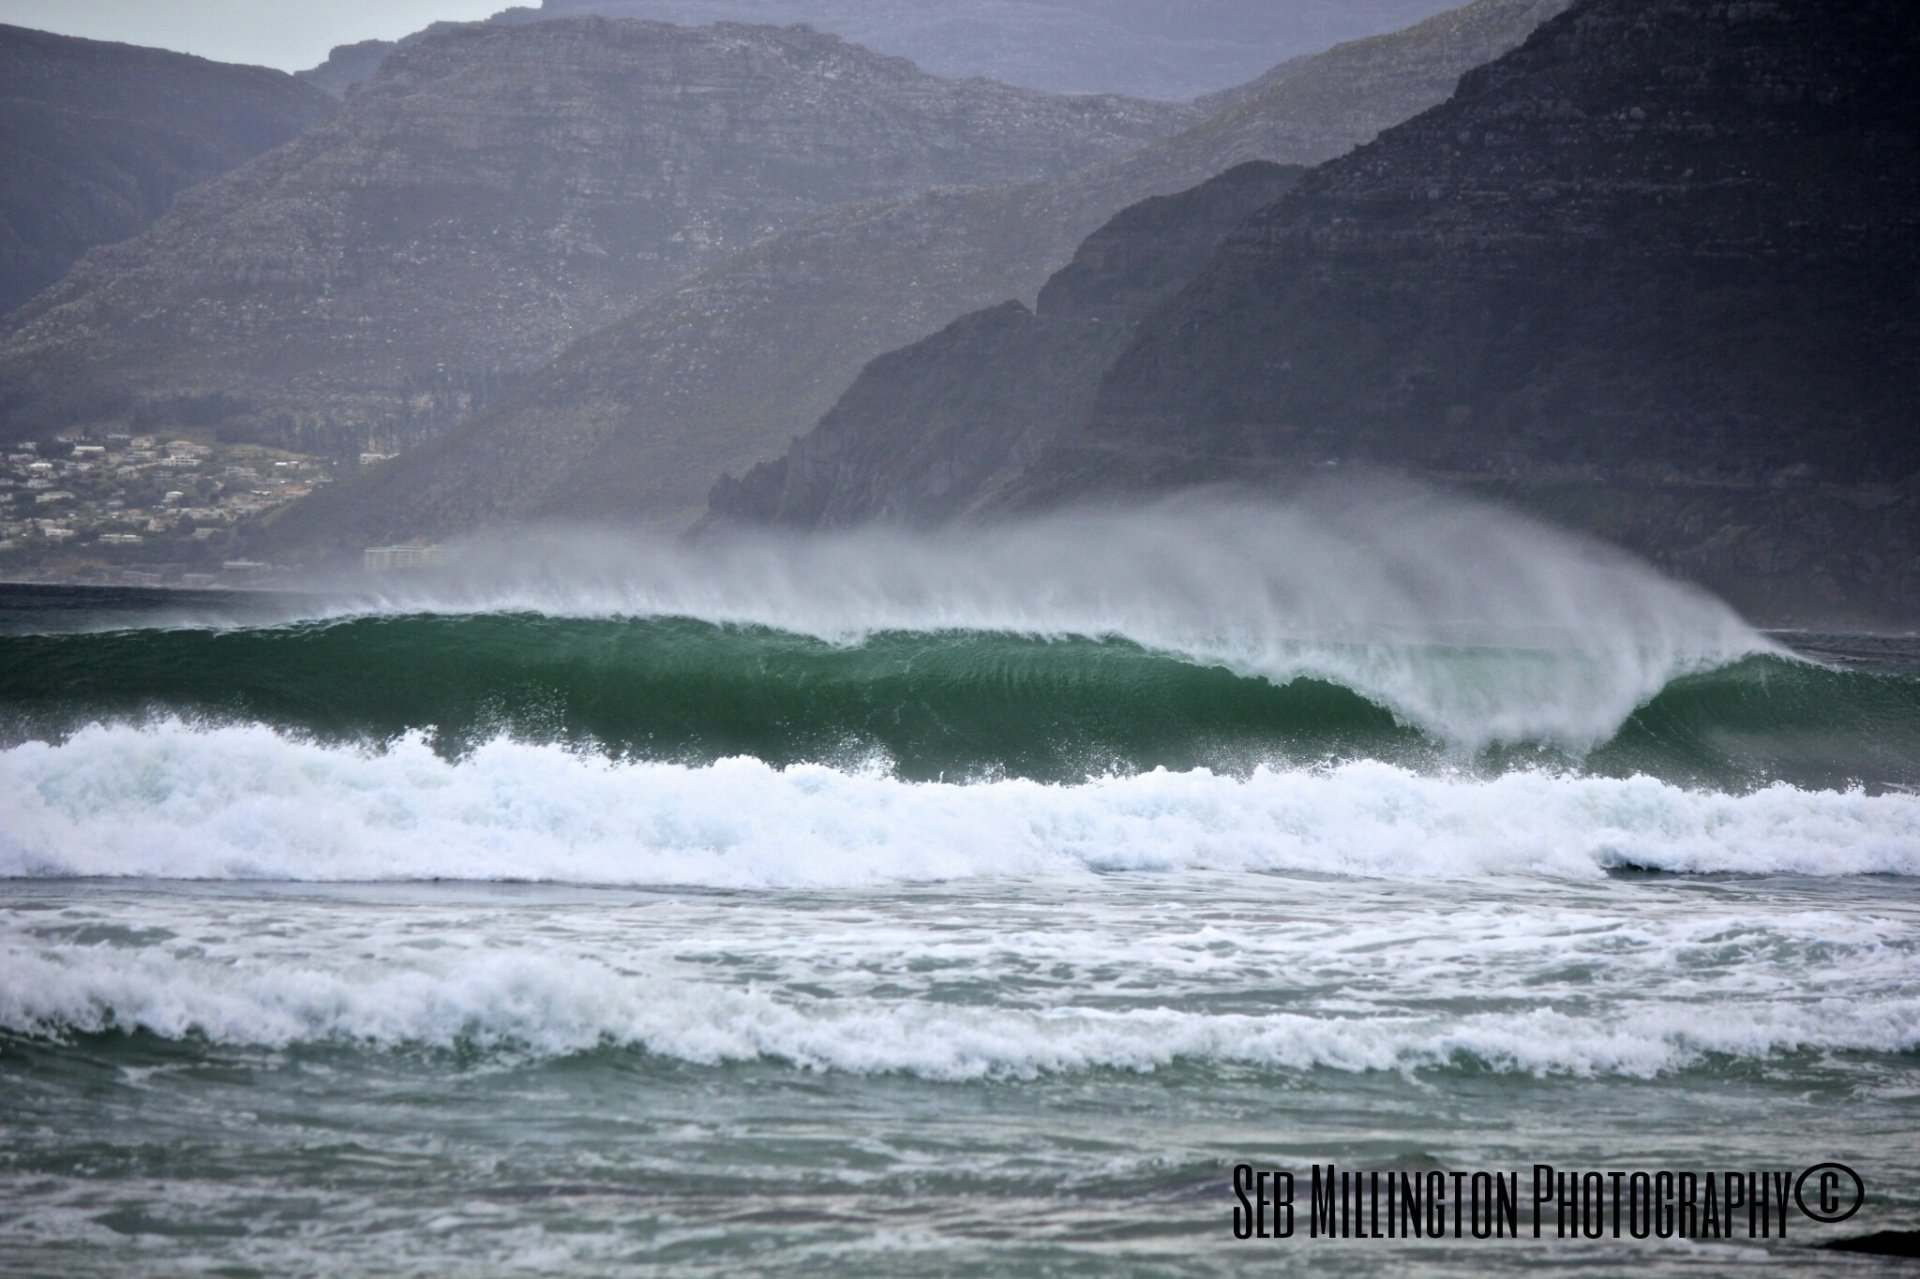 Sebastian Millington's photo of Kommetjie